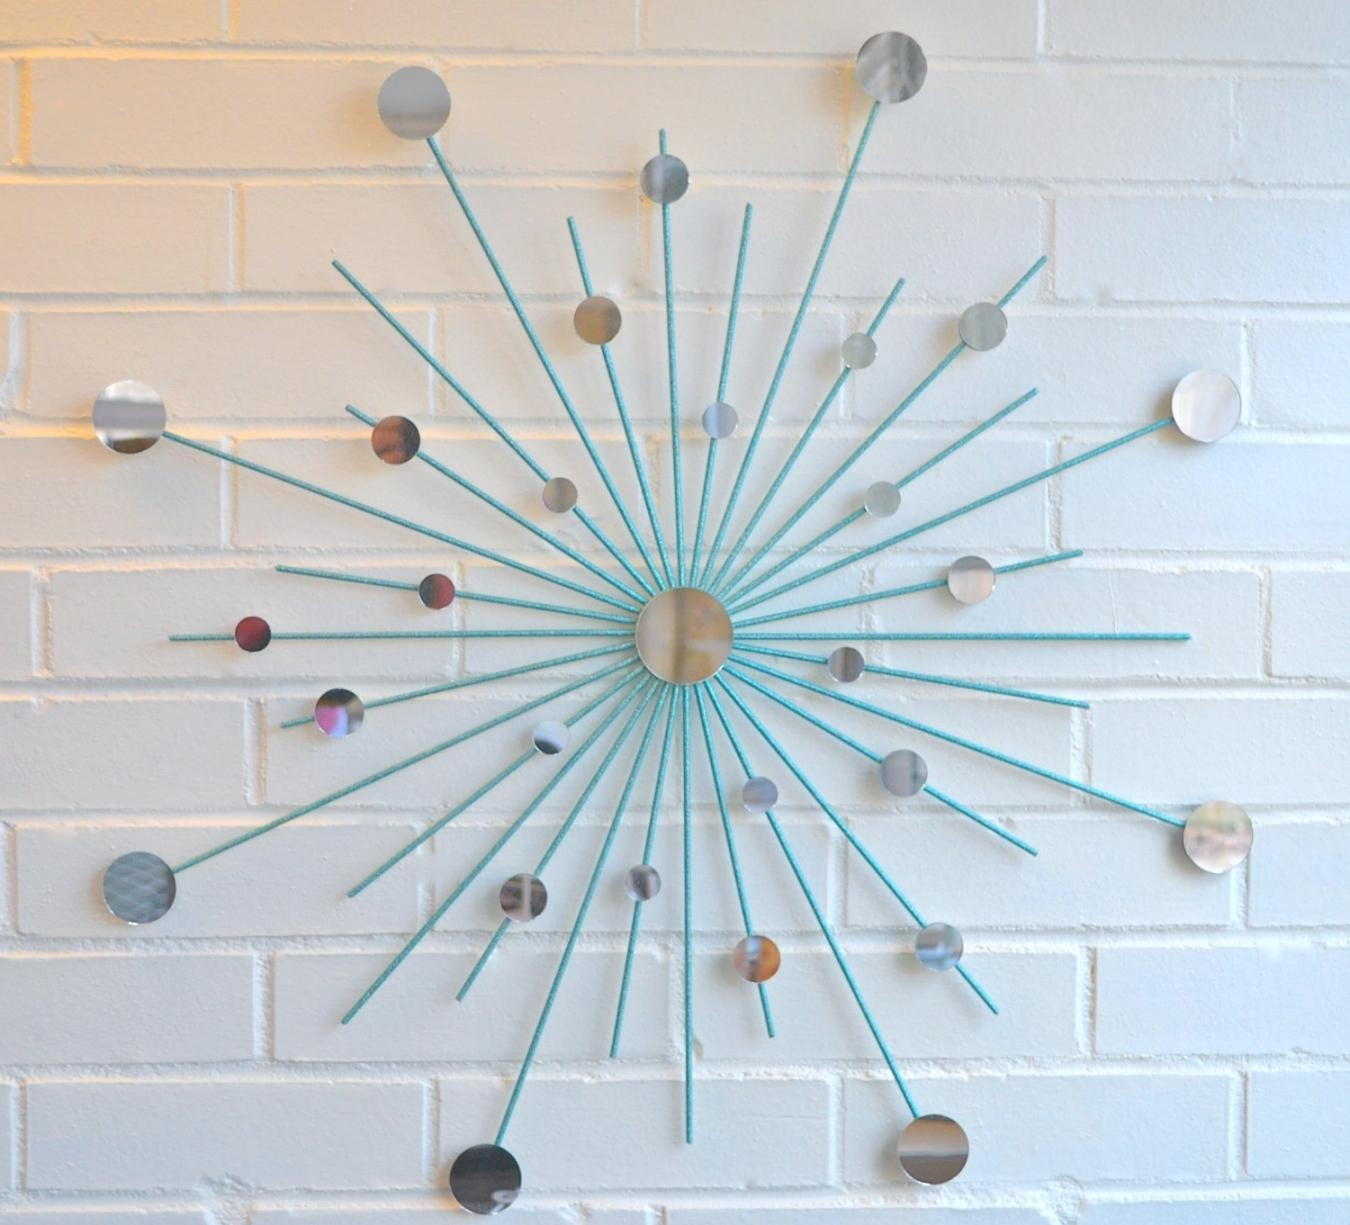 Modern Metal Wall Art Mirror Mod Style Star Starburst Sun Sunburst Inside Teal Metal Wall Art (Image 6 of 20)